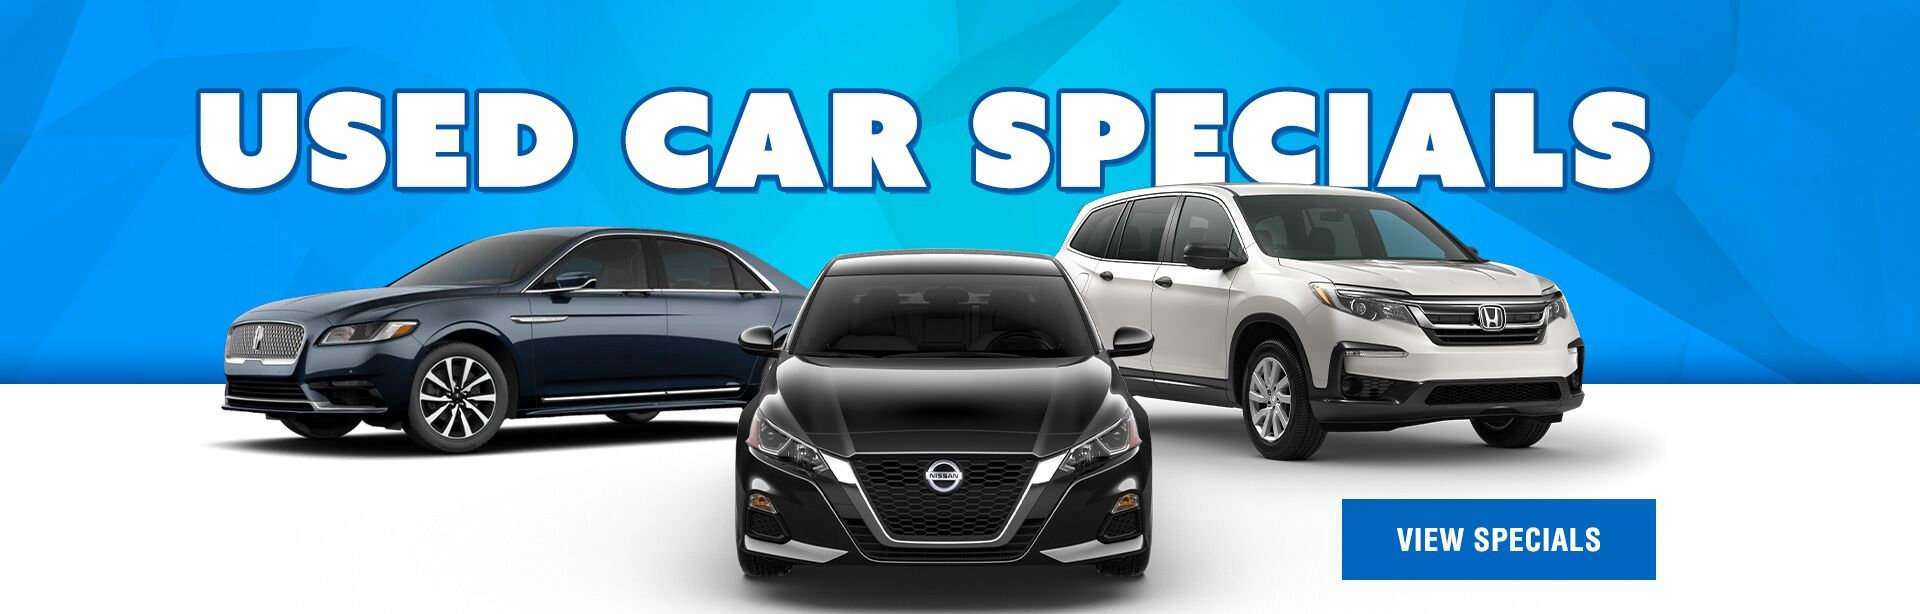 Used Car Specials